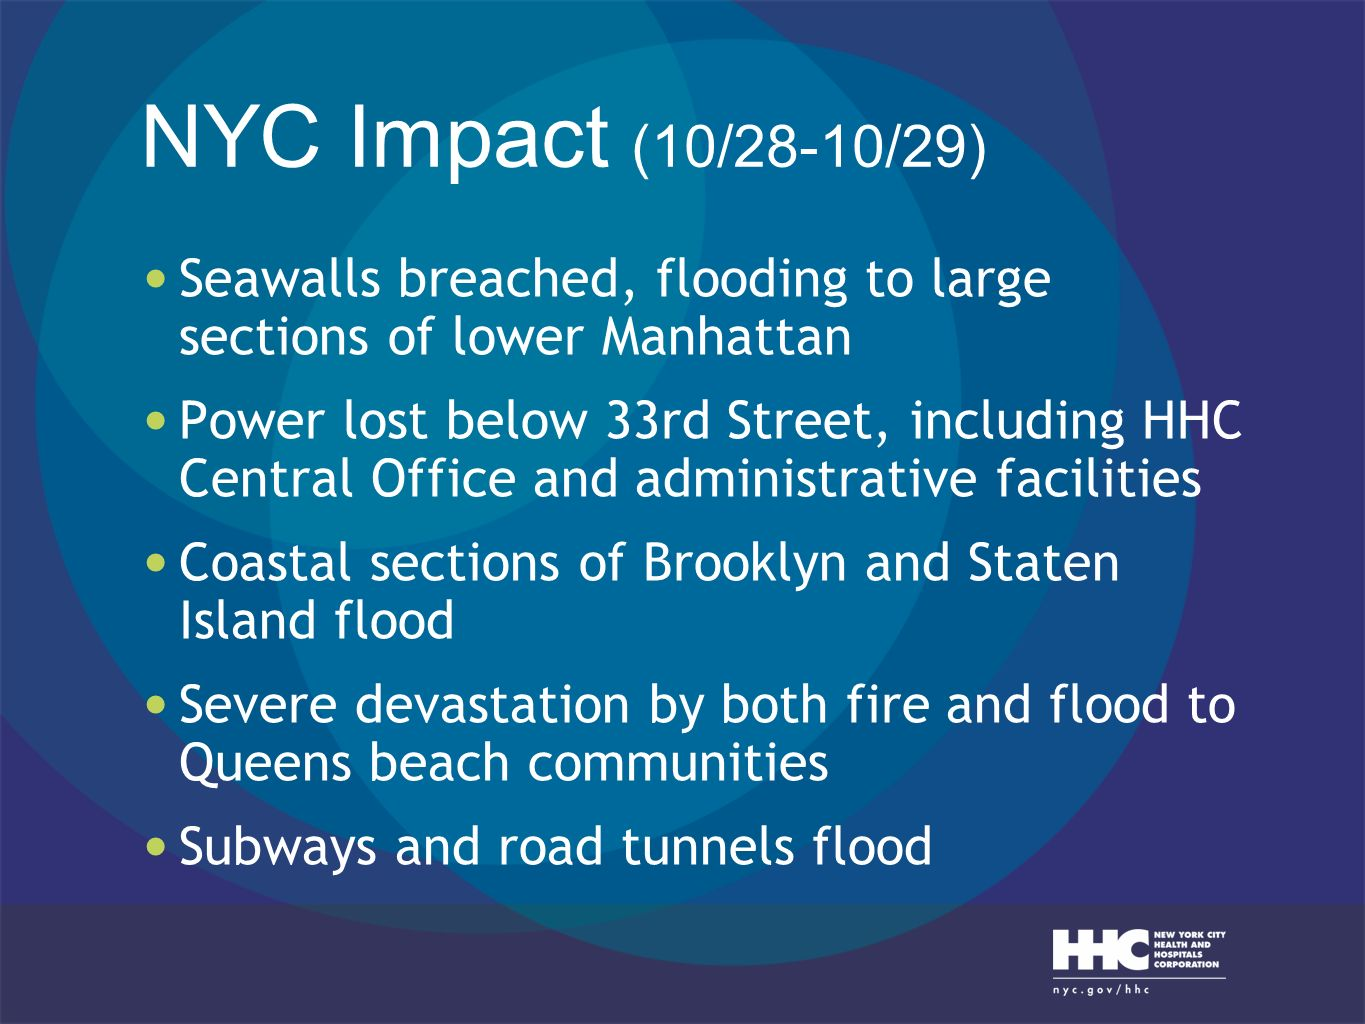 NYC Impact (10/28-10/29) Seawalls breached, flooding to large sections of lower Manhattan.